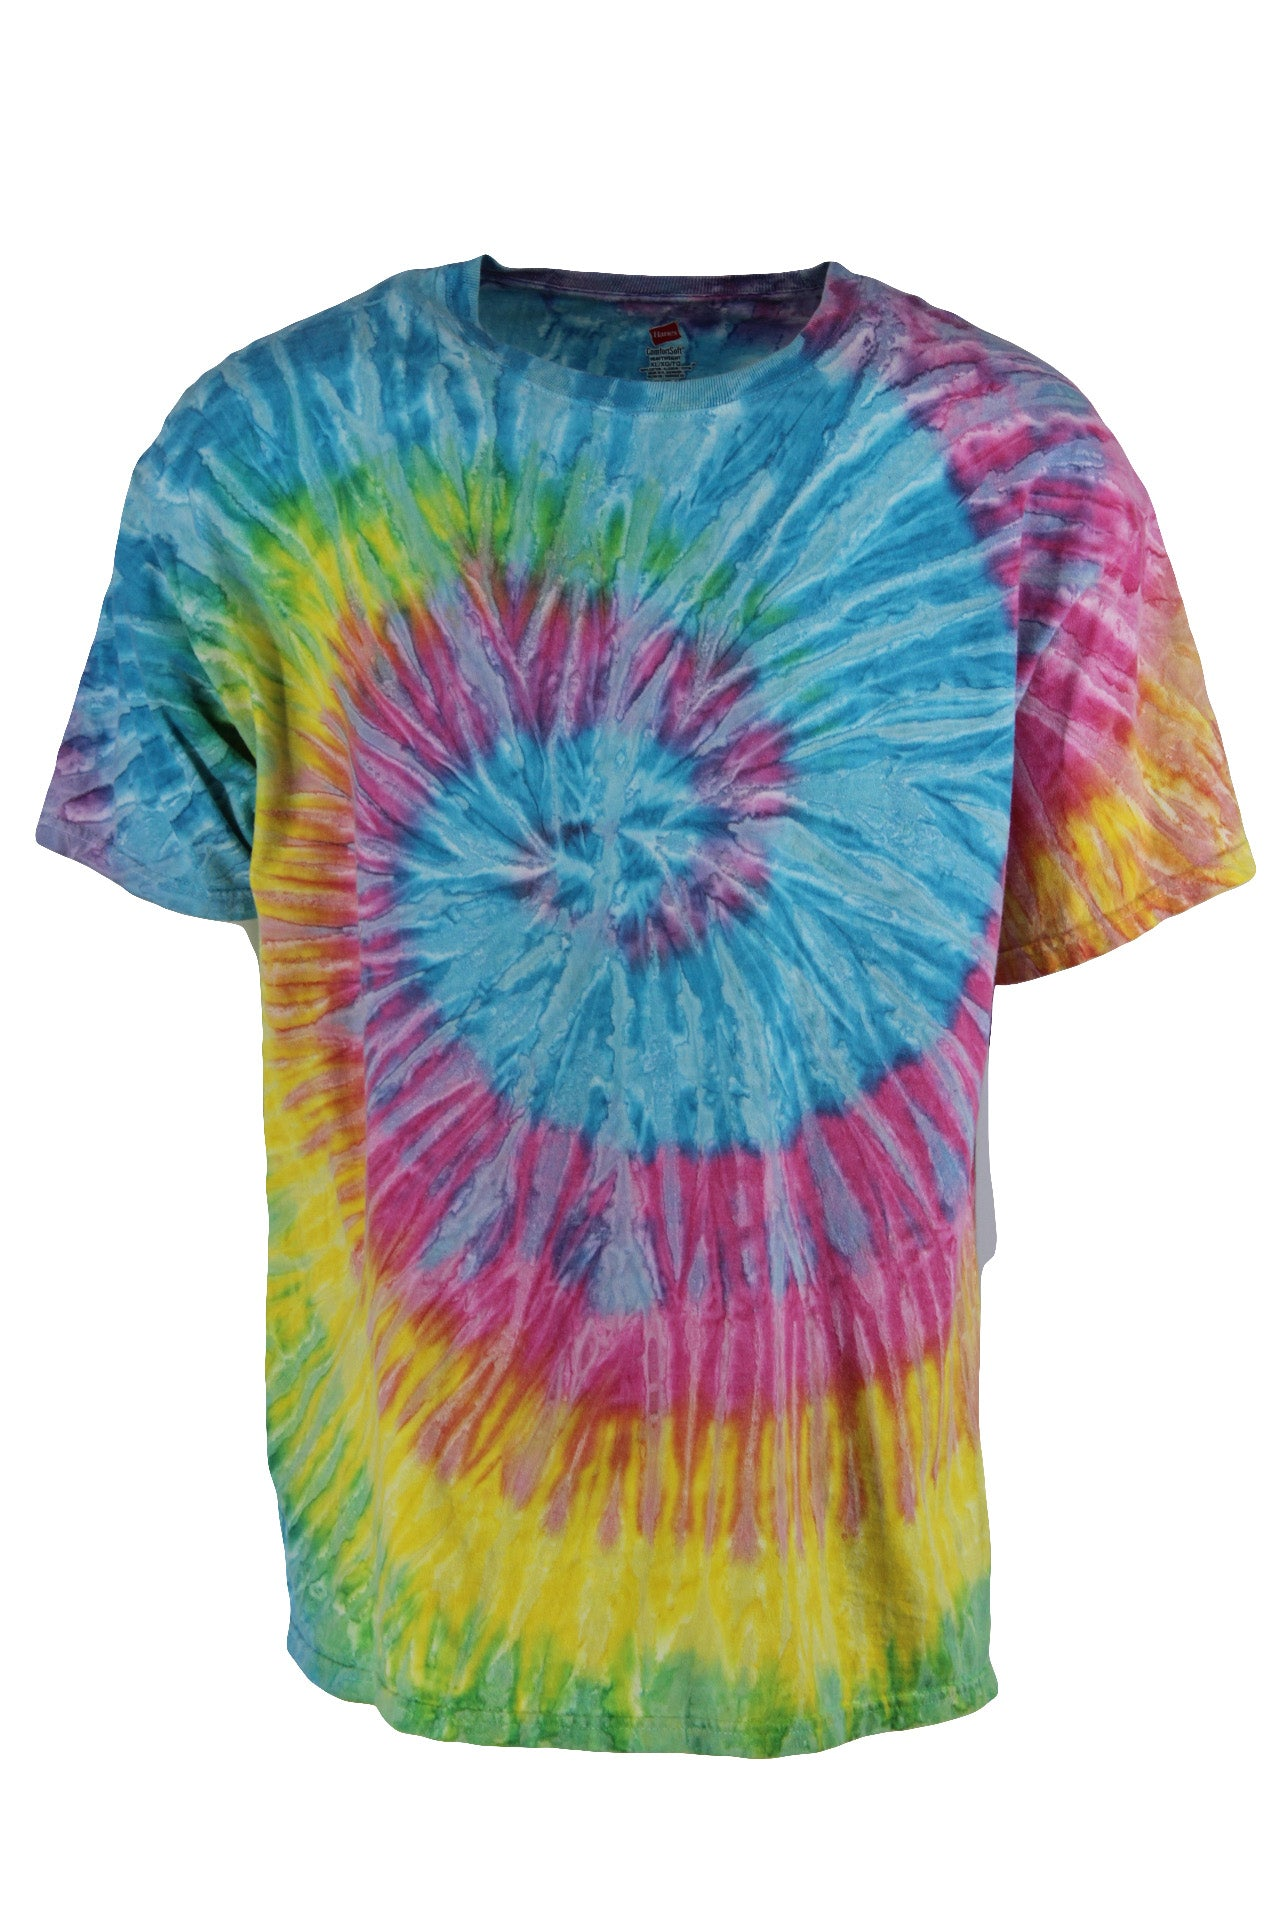 unlabeled rainbow tie-dyed short sleeve cotton t-shirt. features intricate swirled design at front and back with ribbed crewneck in a semi-boxy cut.